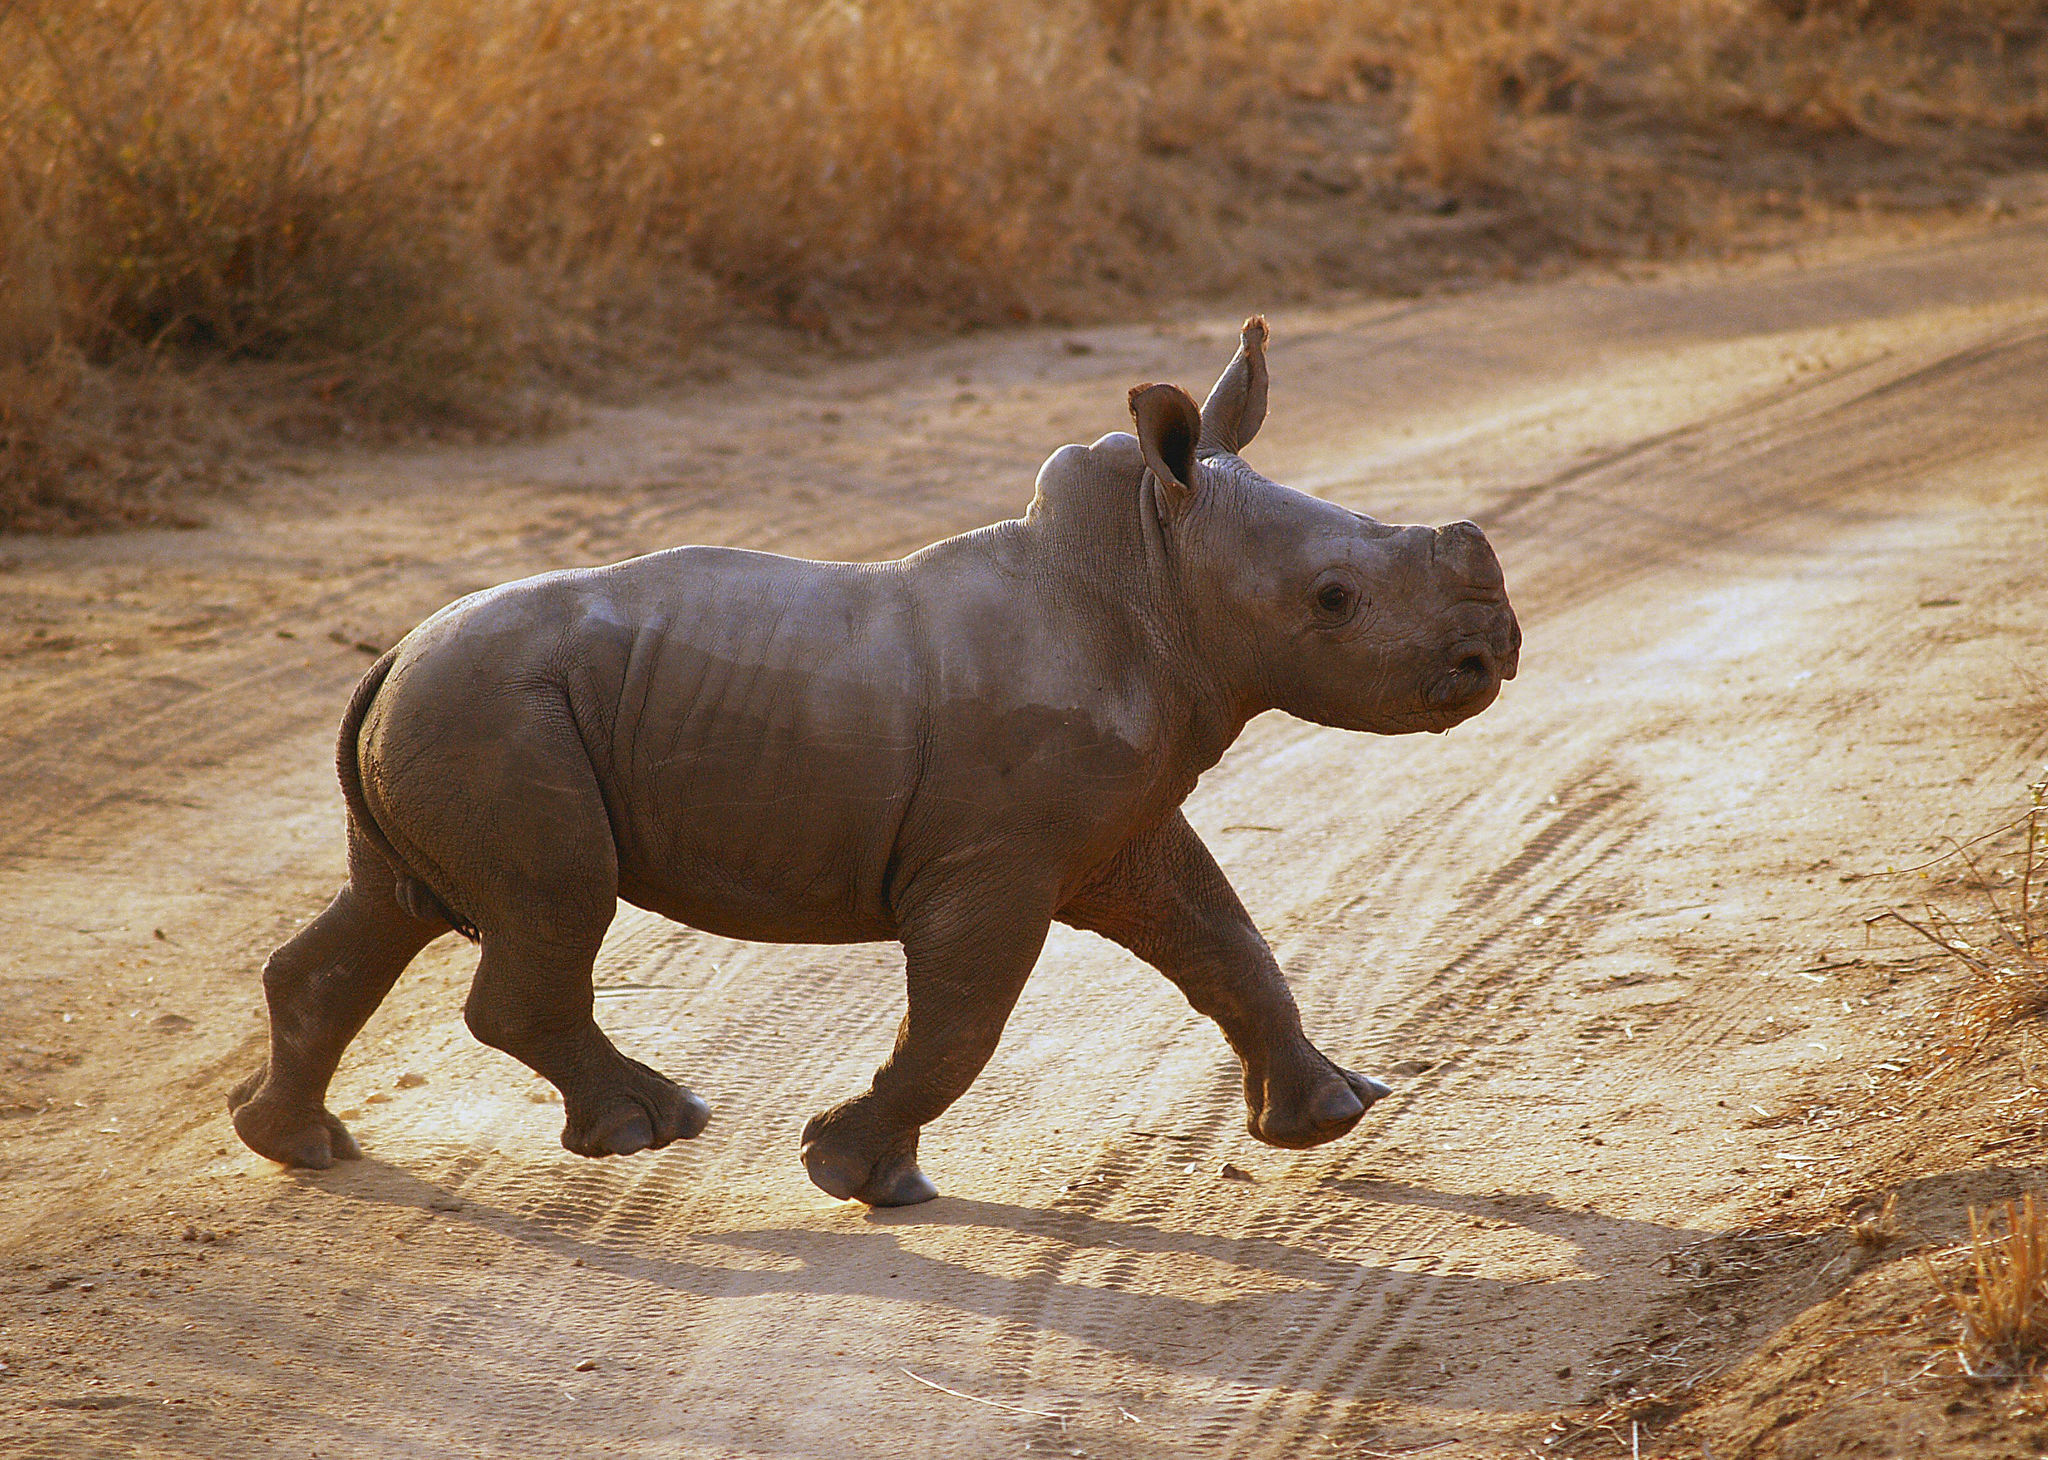 A baby rhino moseys along the Tswalu Private Game Reserve